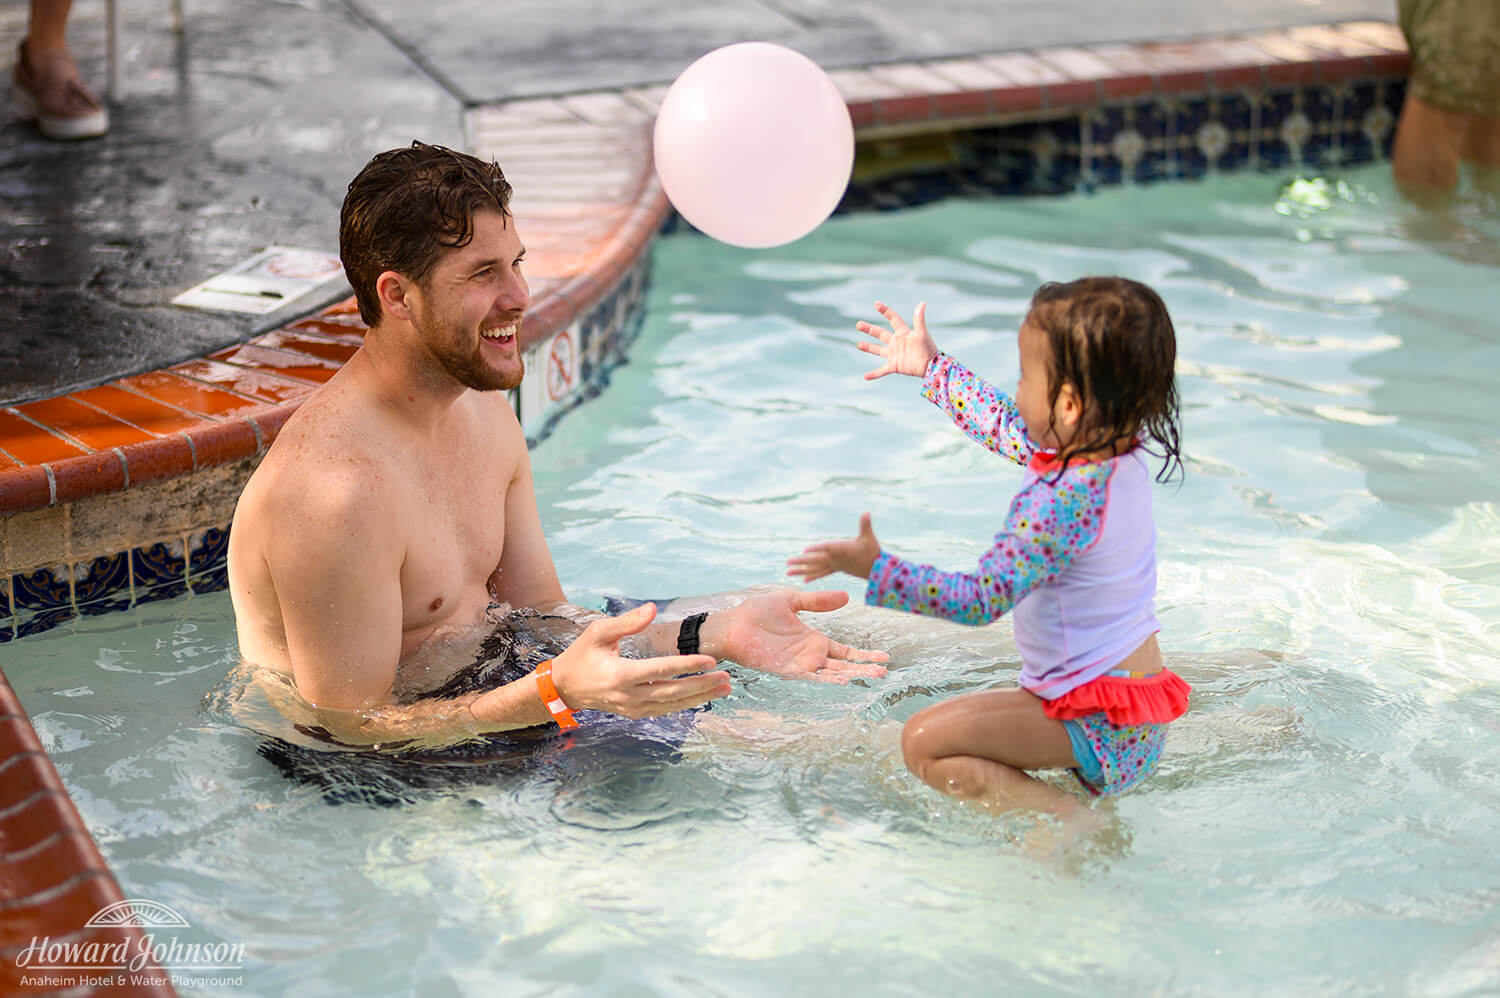 a man and a small girl play with a pink balloon in the air while in the pool